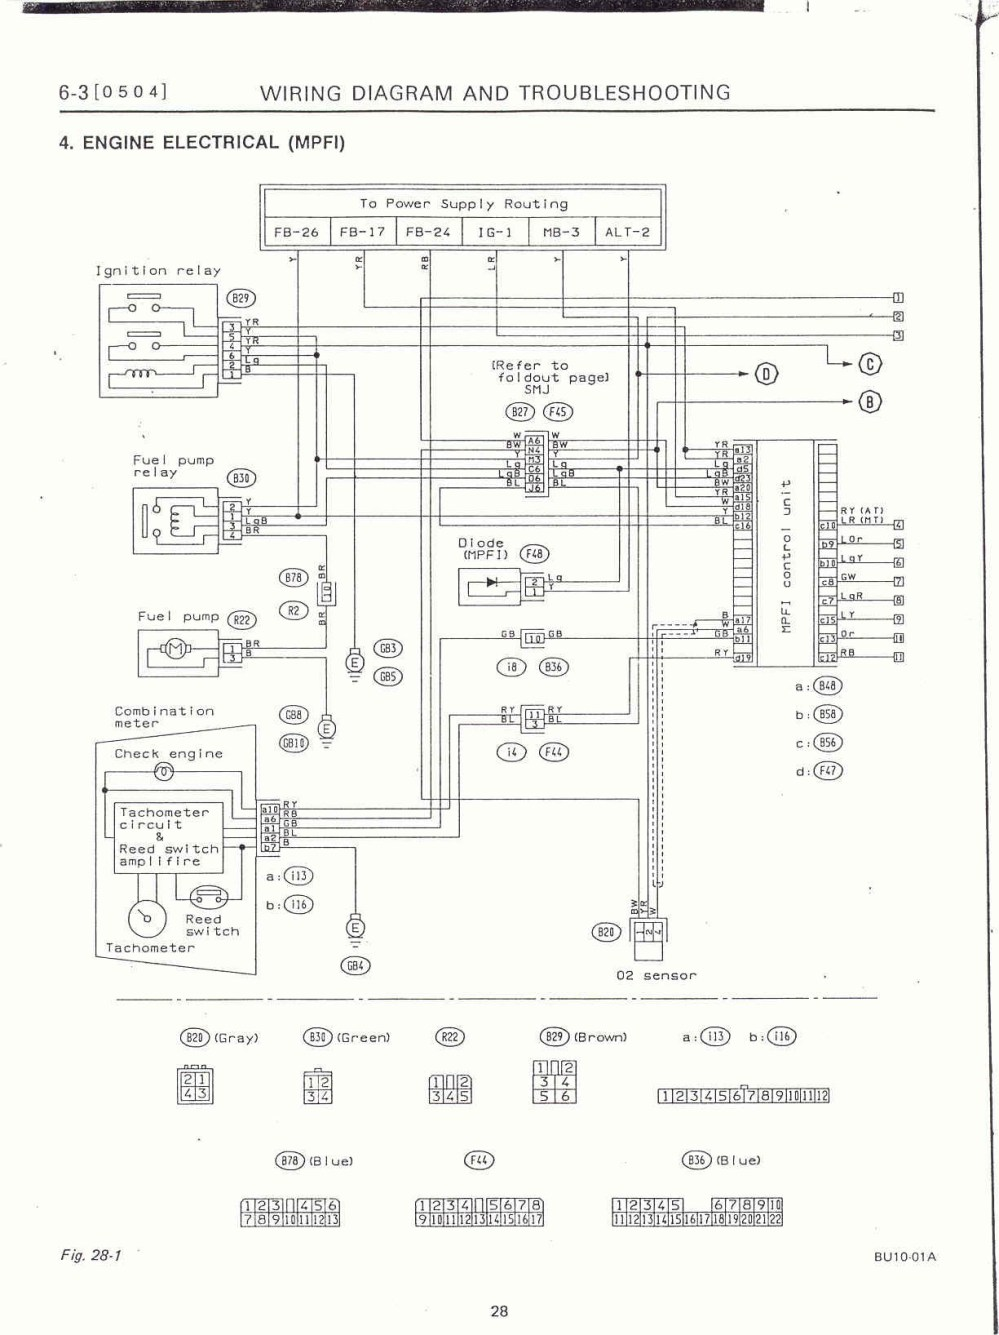 medium resolution of 92 subaru legacy wiring diagram wiring diagram perfomance 1992 subaru legacy engine diagram